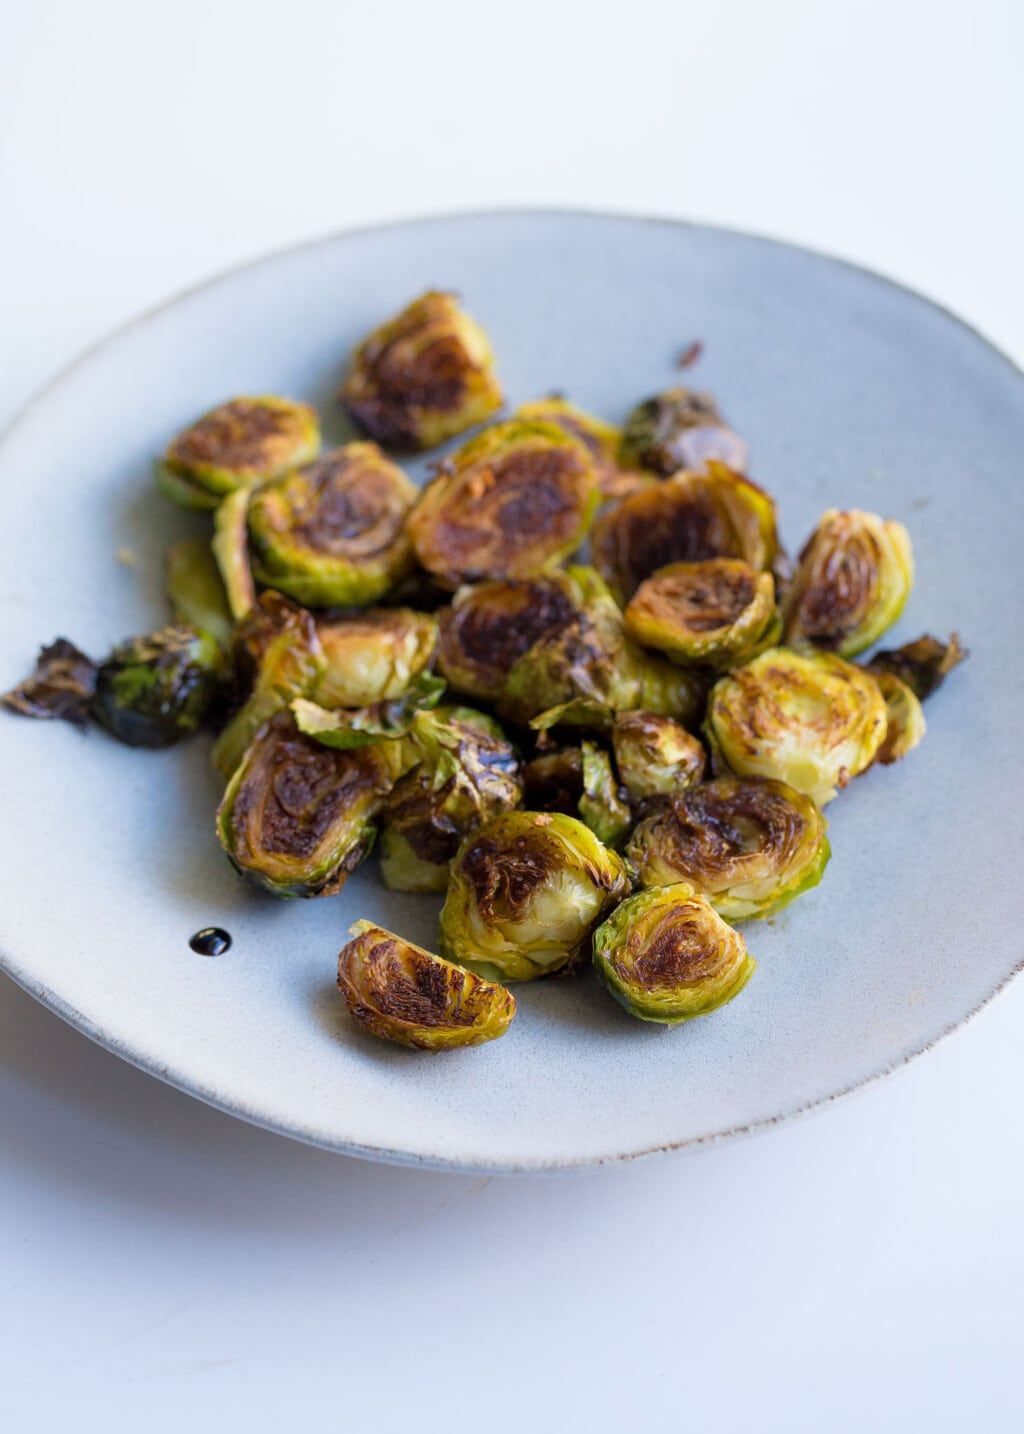 A white plate of brussels sprouts with balsamic drizzle on the side.